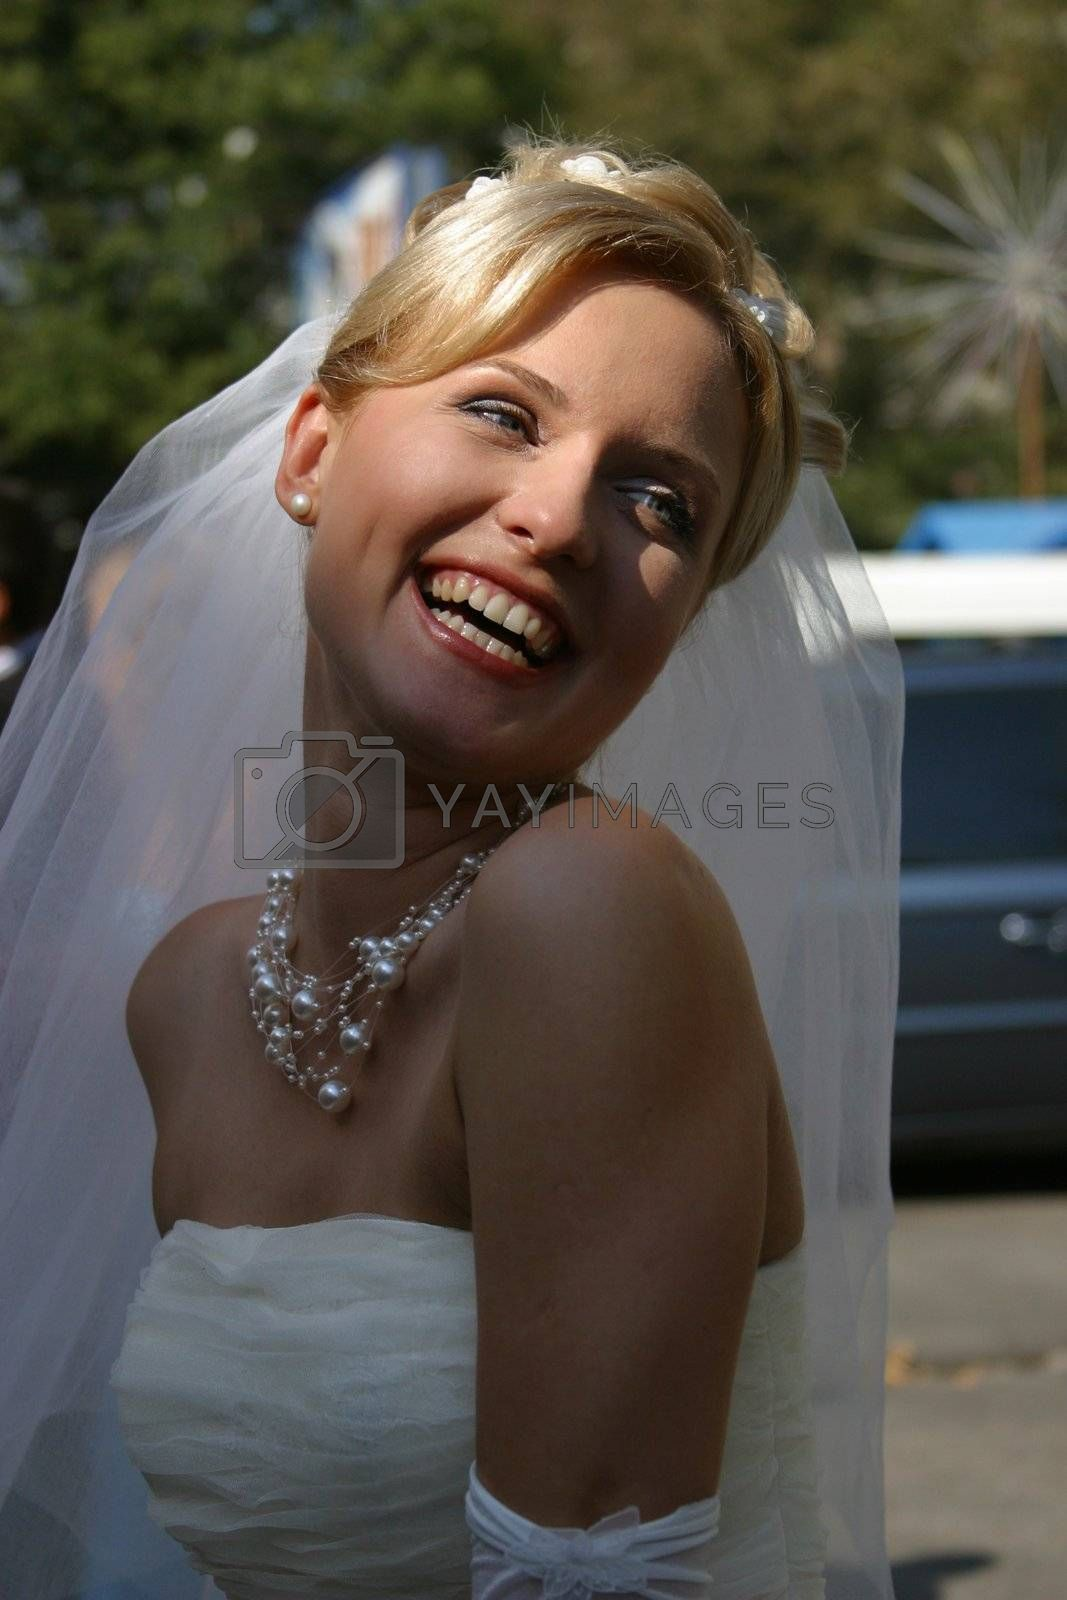 The happy Bride by friday